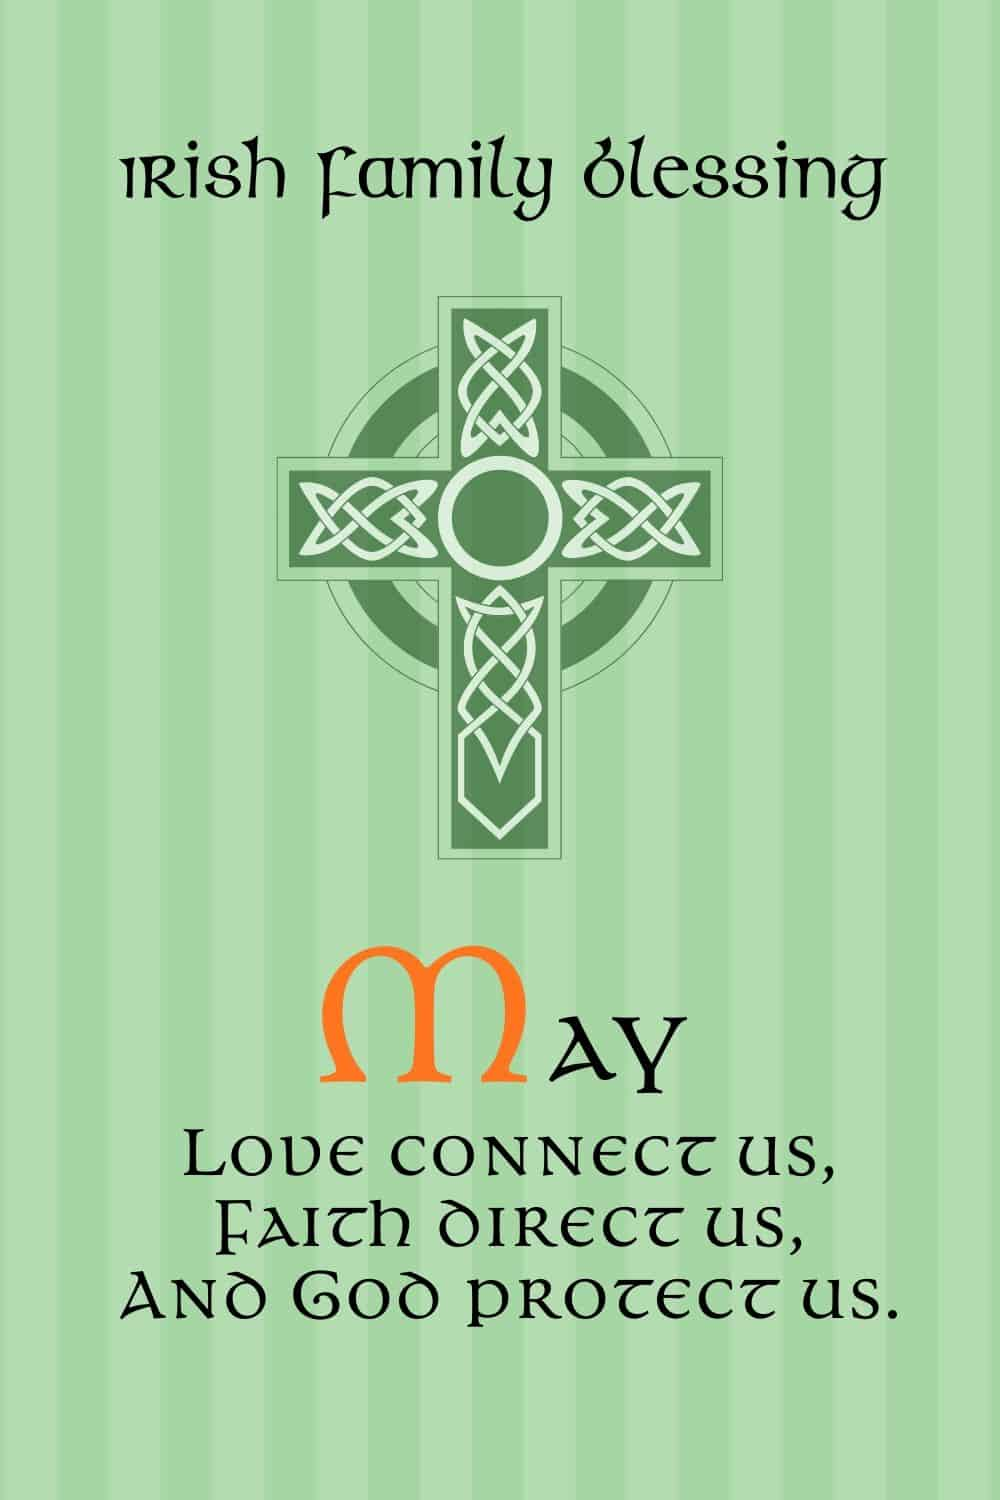 Irish Blessing and Celtic Cross